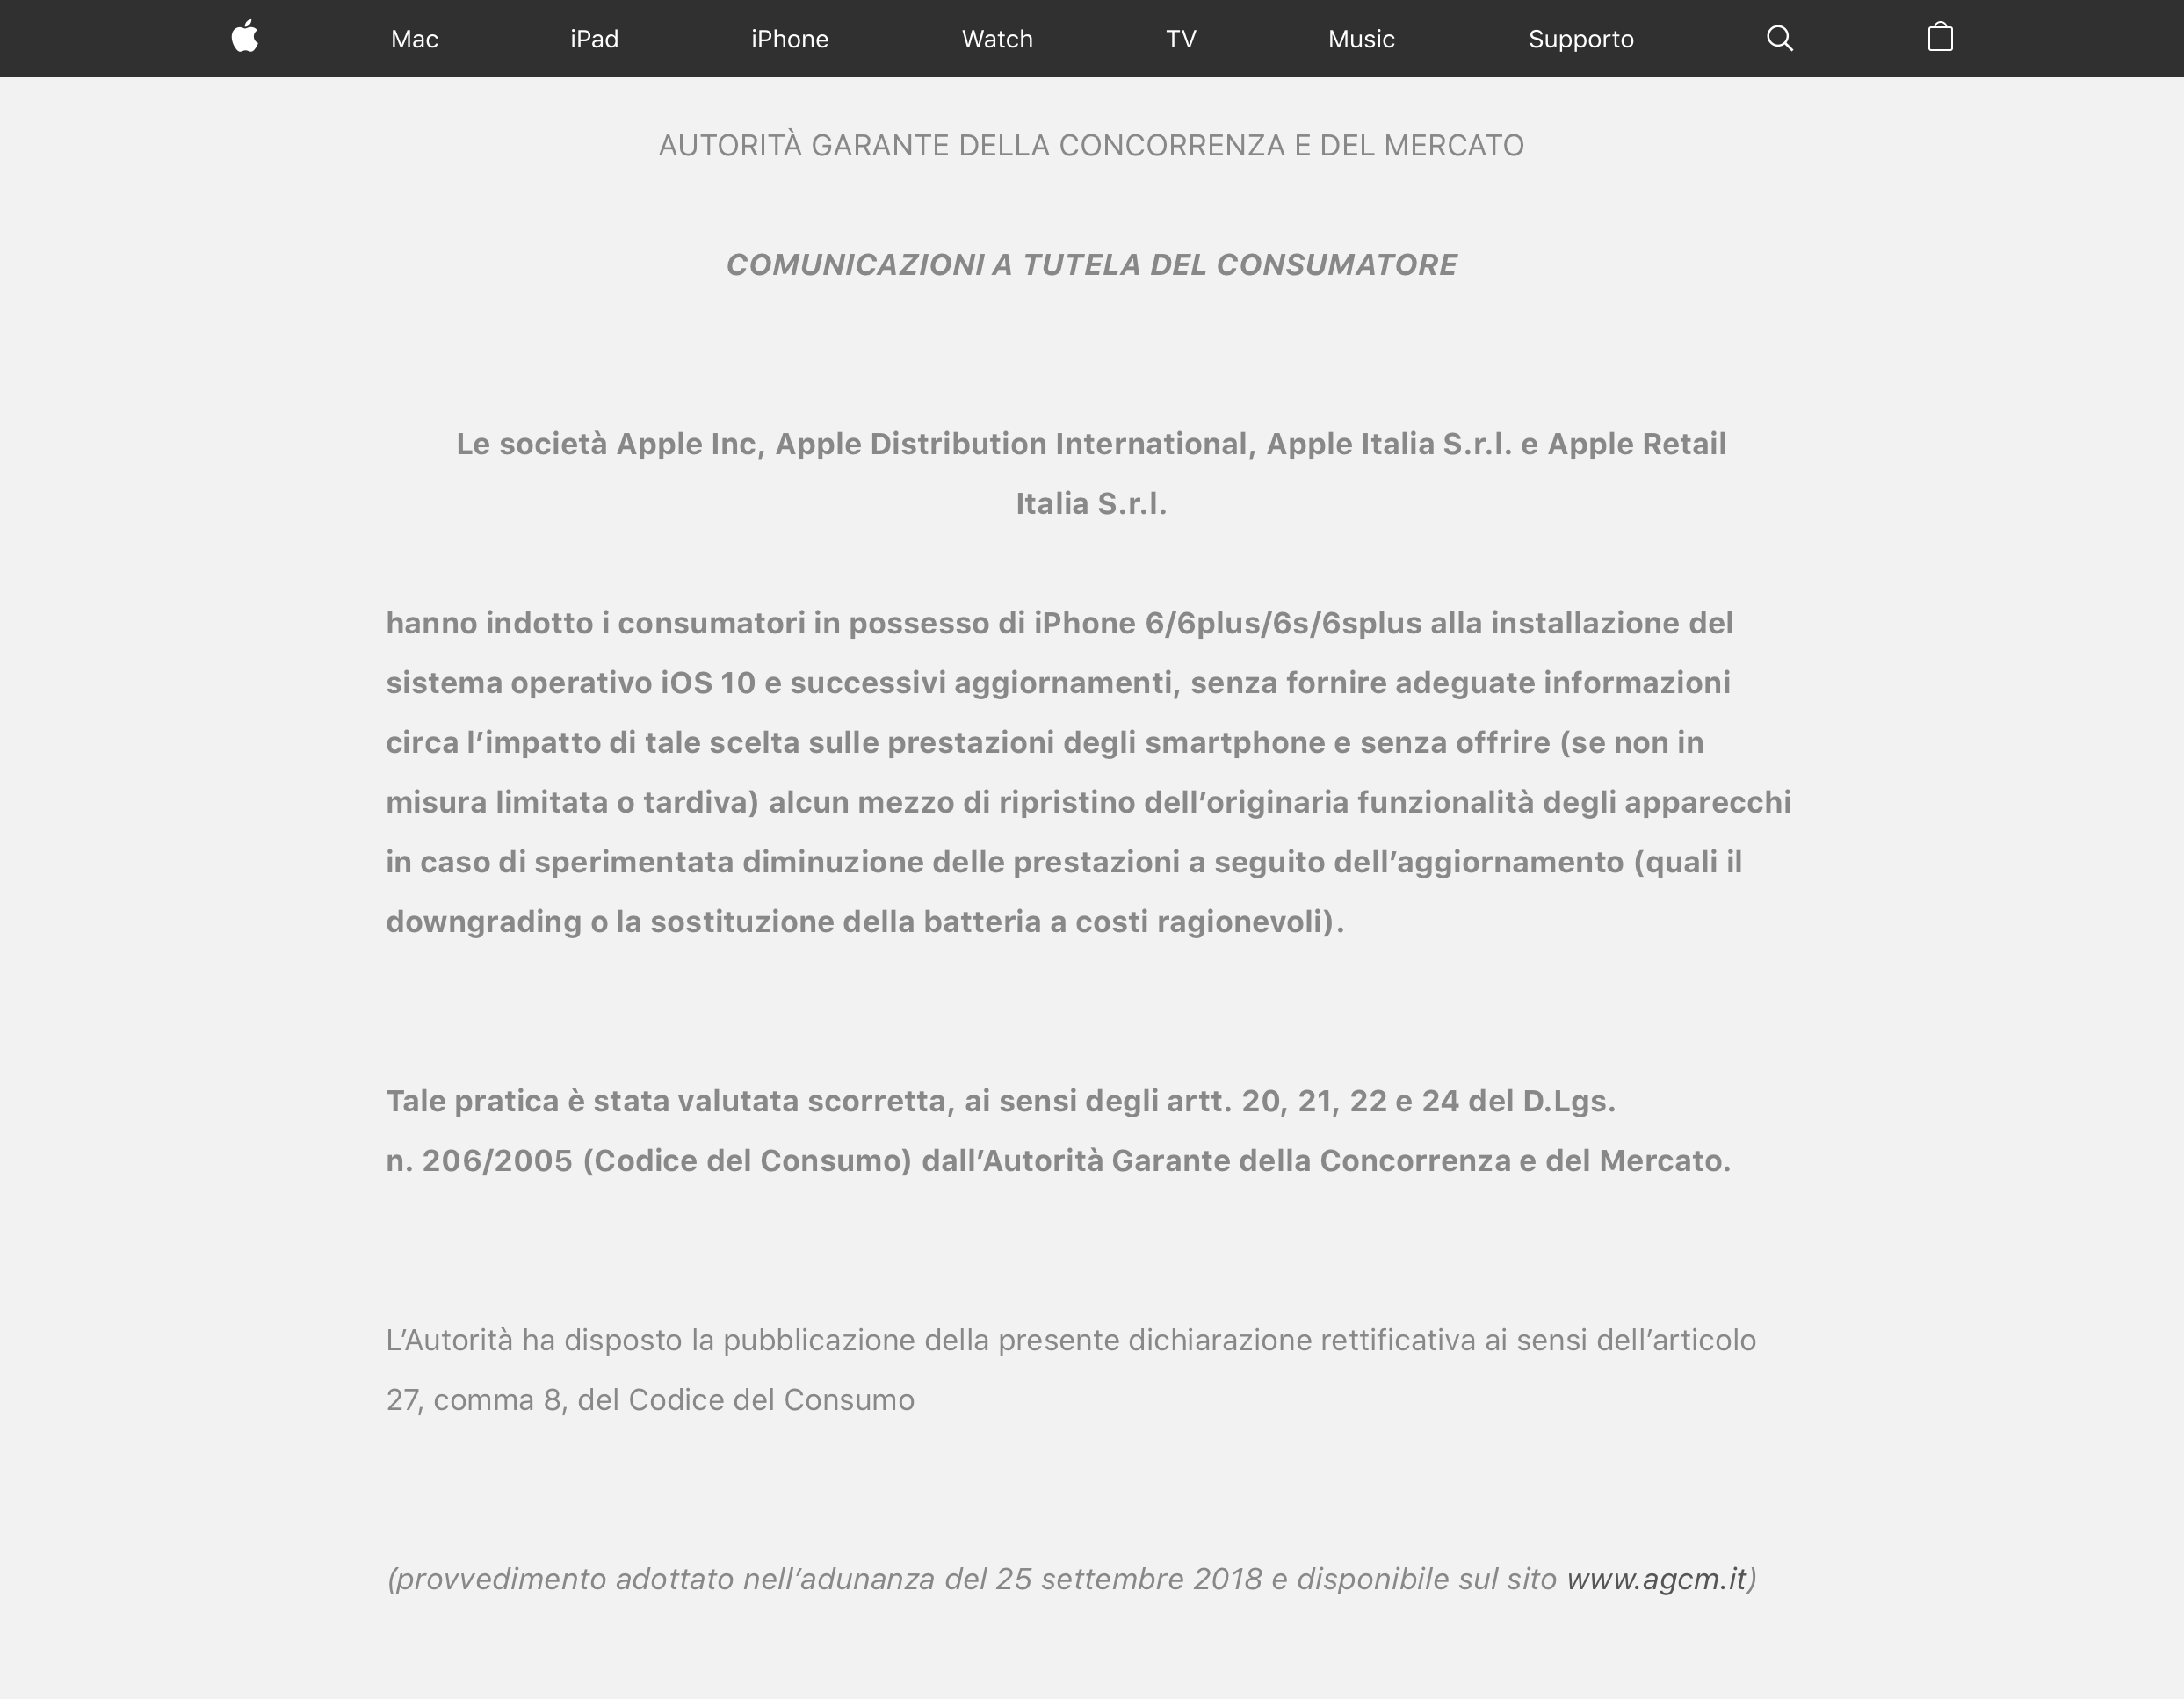 Aviso estampado no site italiano da Apple